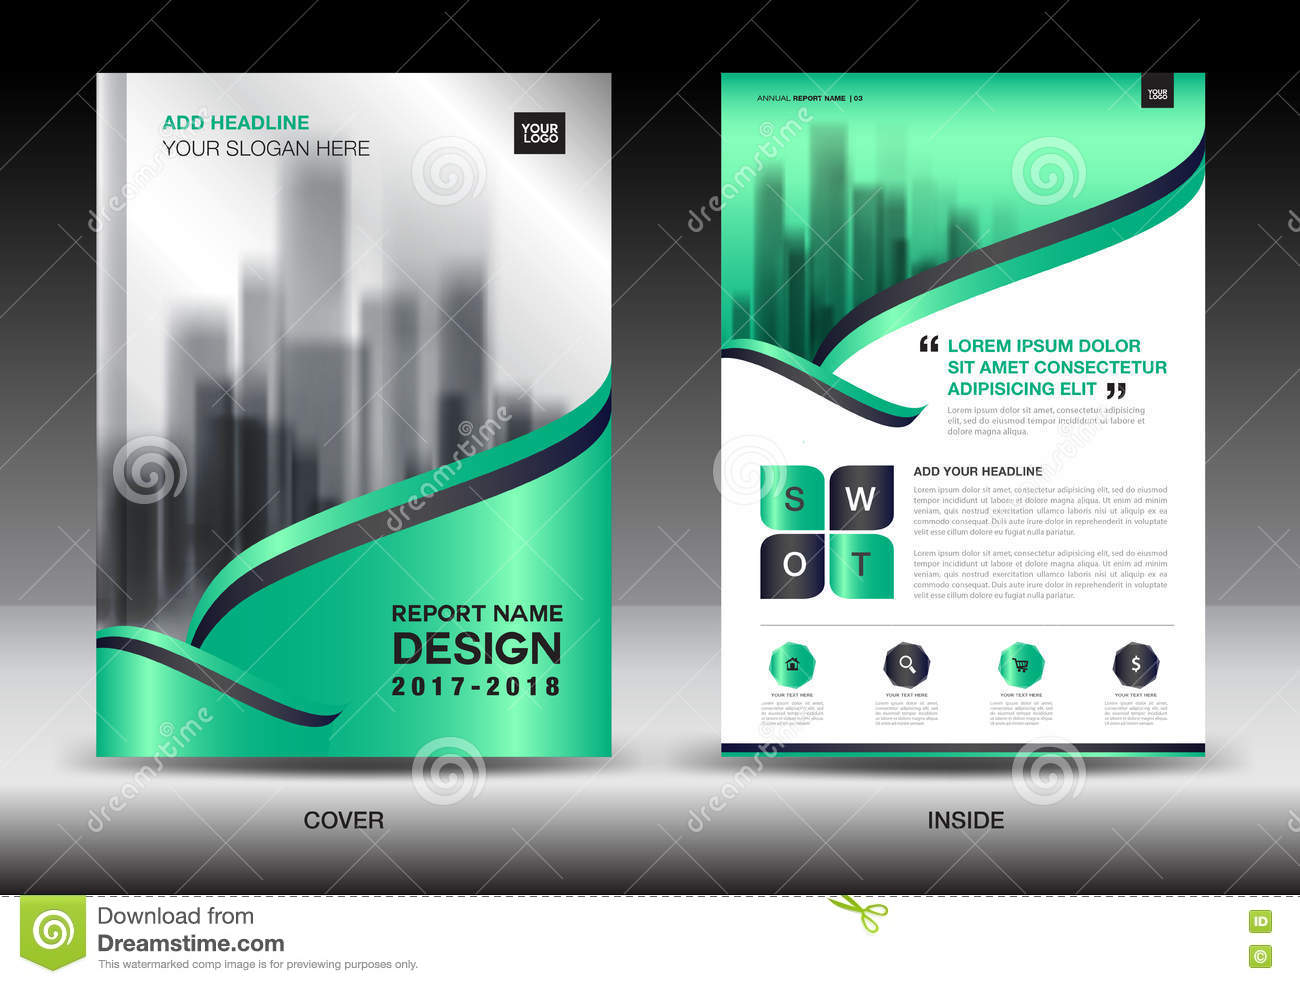 Delighted 10 Best Resumes Tiny 10 Label Template Flat 1099 Form Template 13b Porting Templates Young 16 Team Bracket Template Gray1st Birthday Invite Templates Green Cover Annual Report Brochure Flyer Template Stock Vector ..